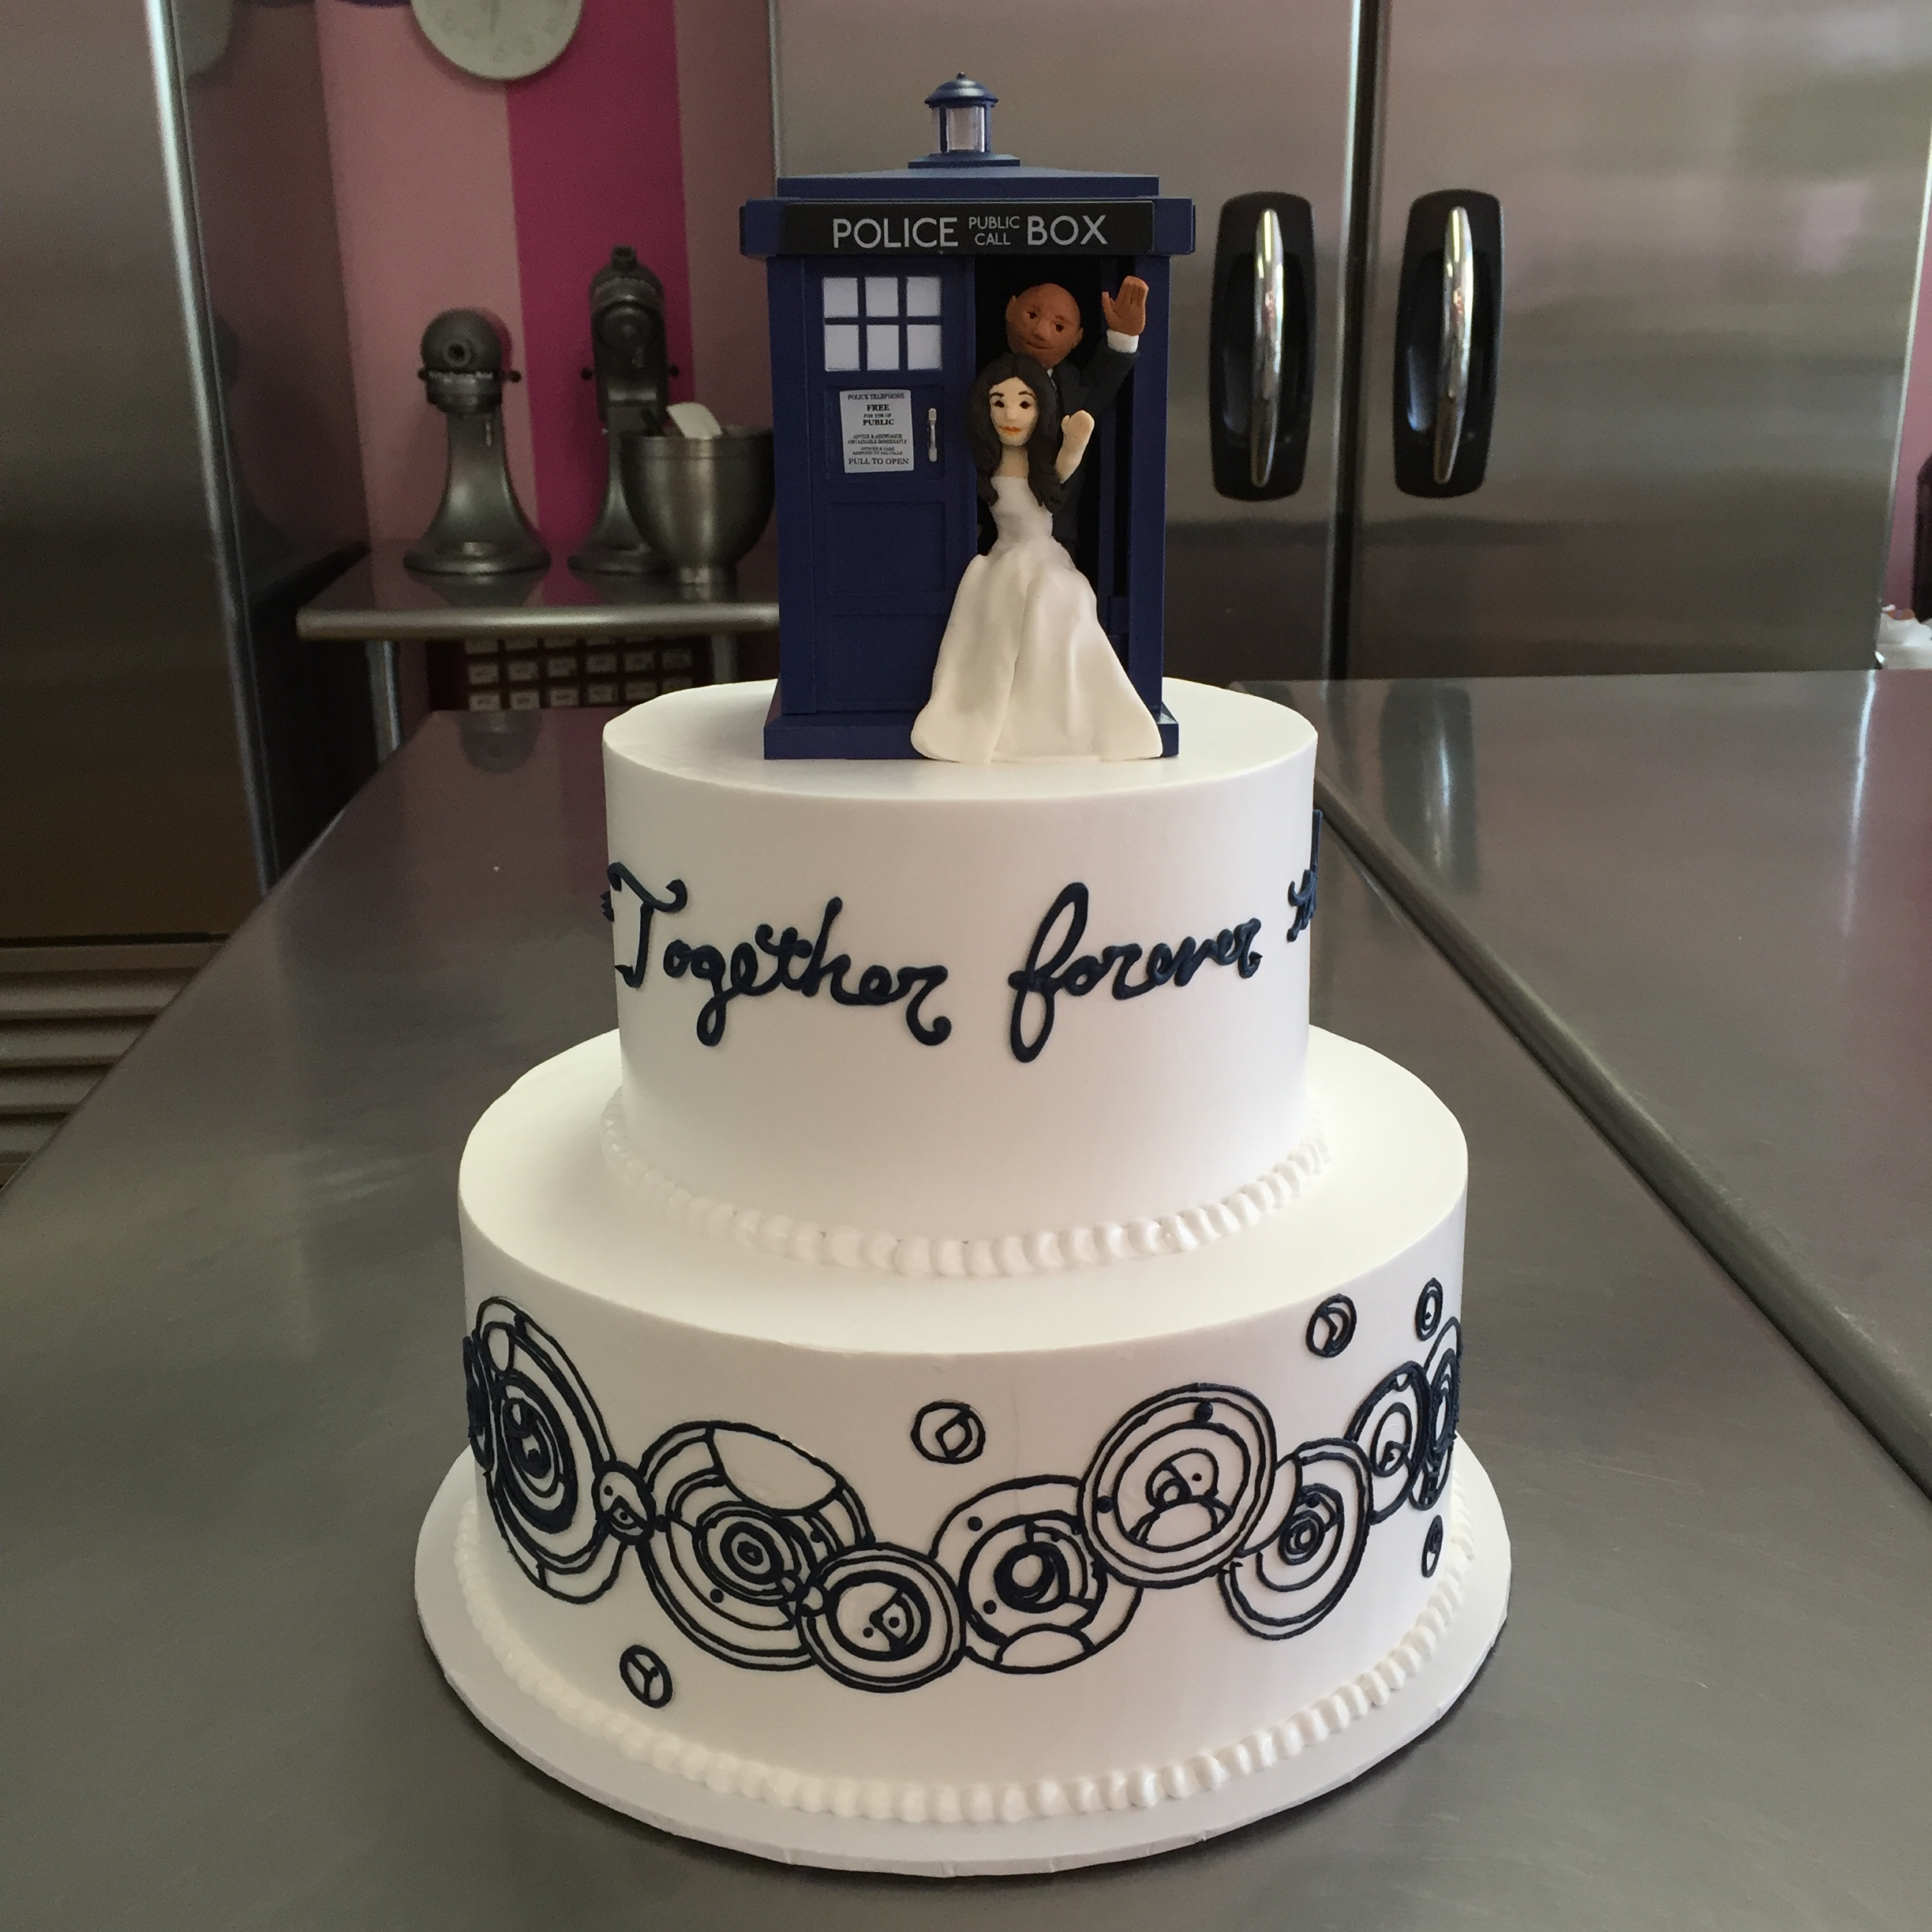 223 - Dr. Who Inspired Wedding Cake